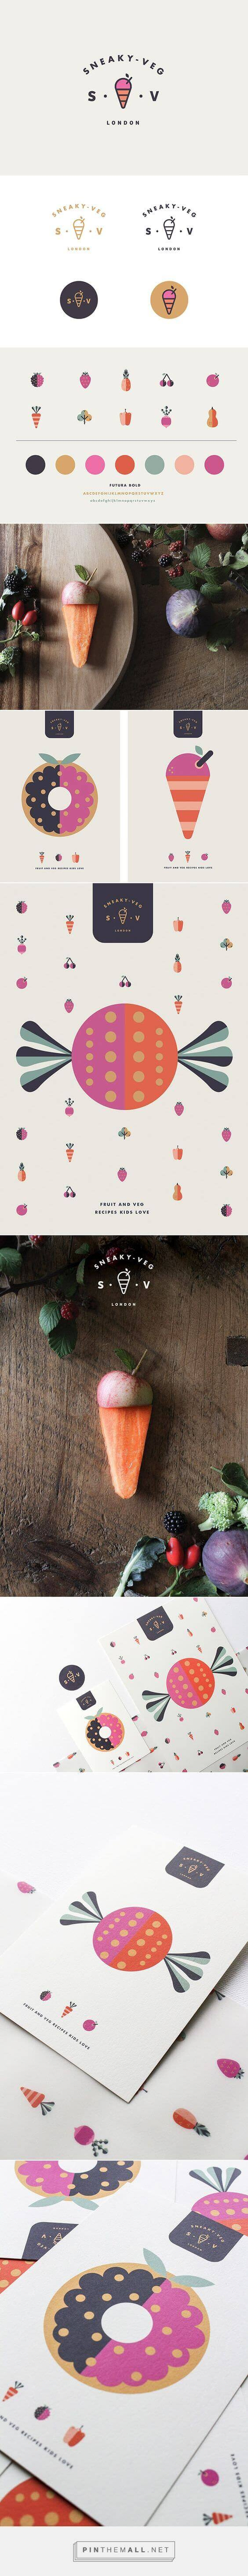 Brand board for Sneaky Veg by Vicki Turner